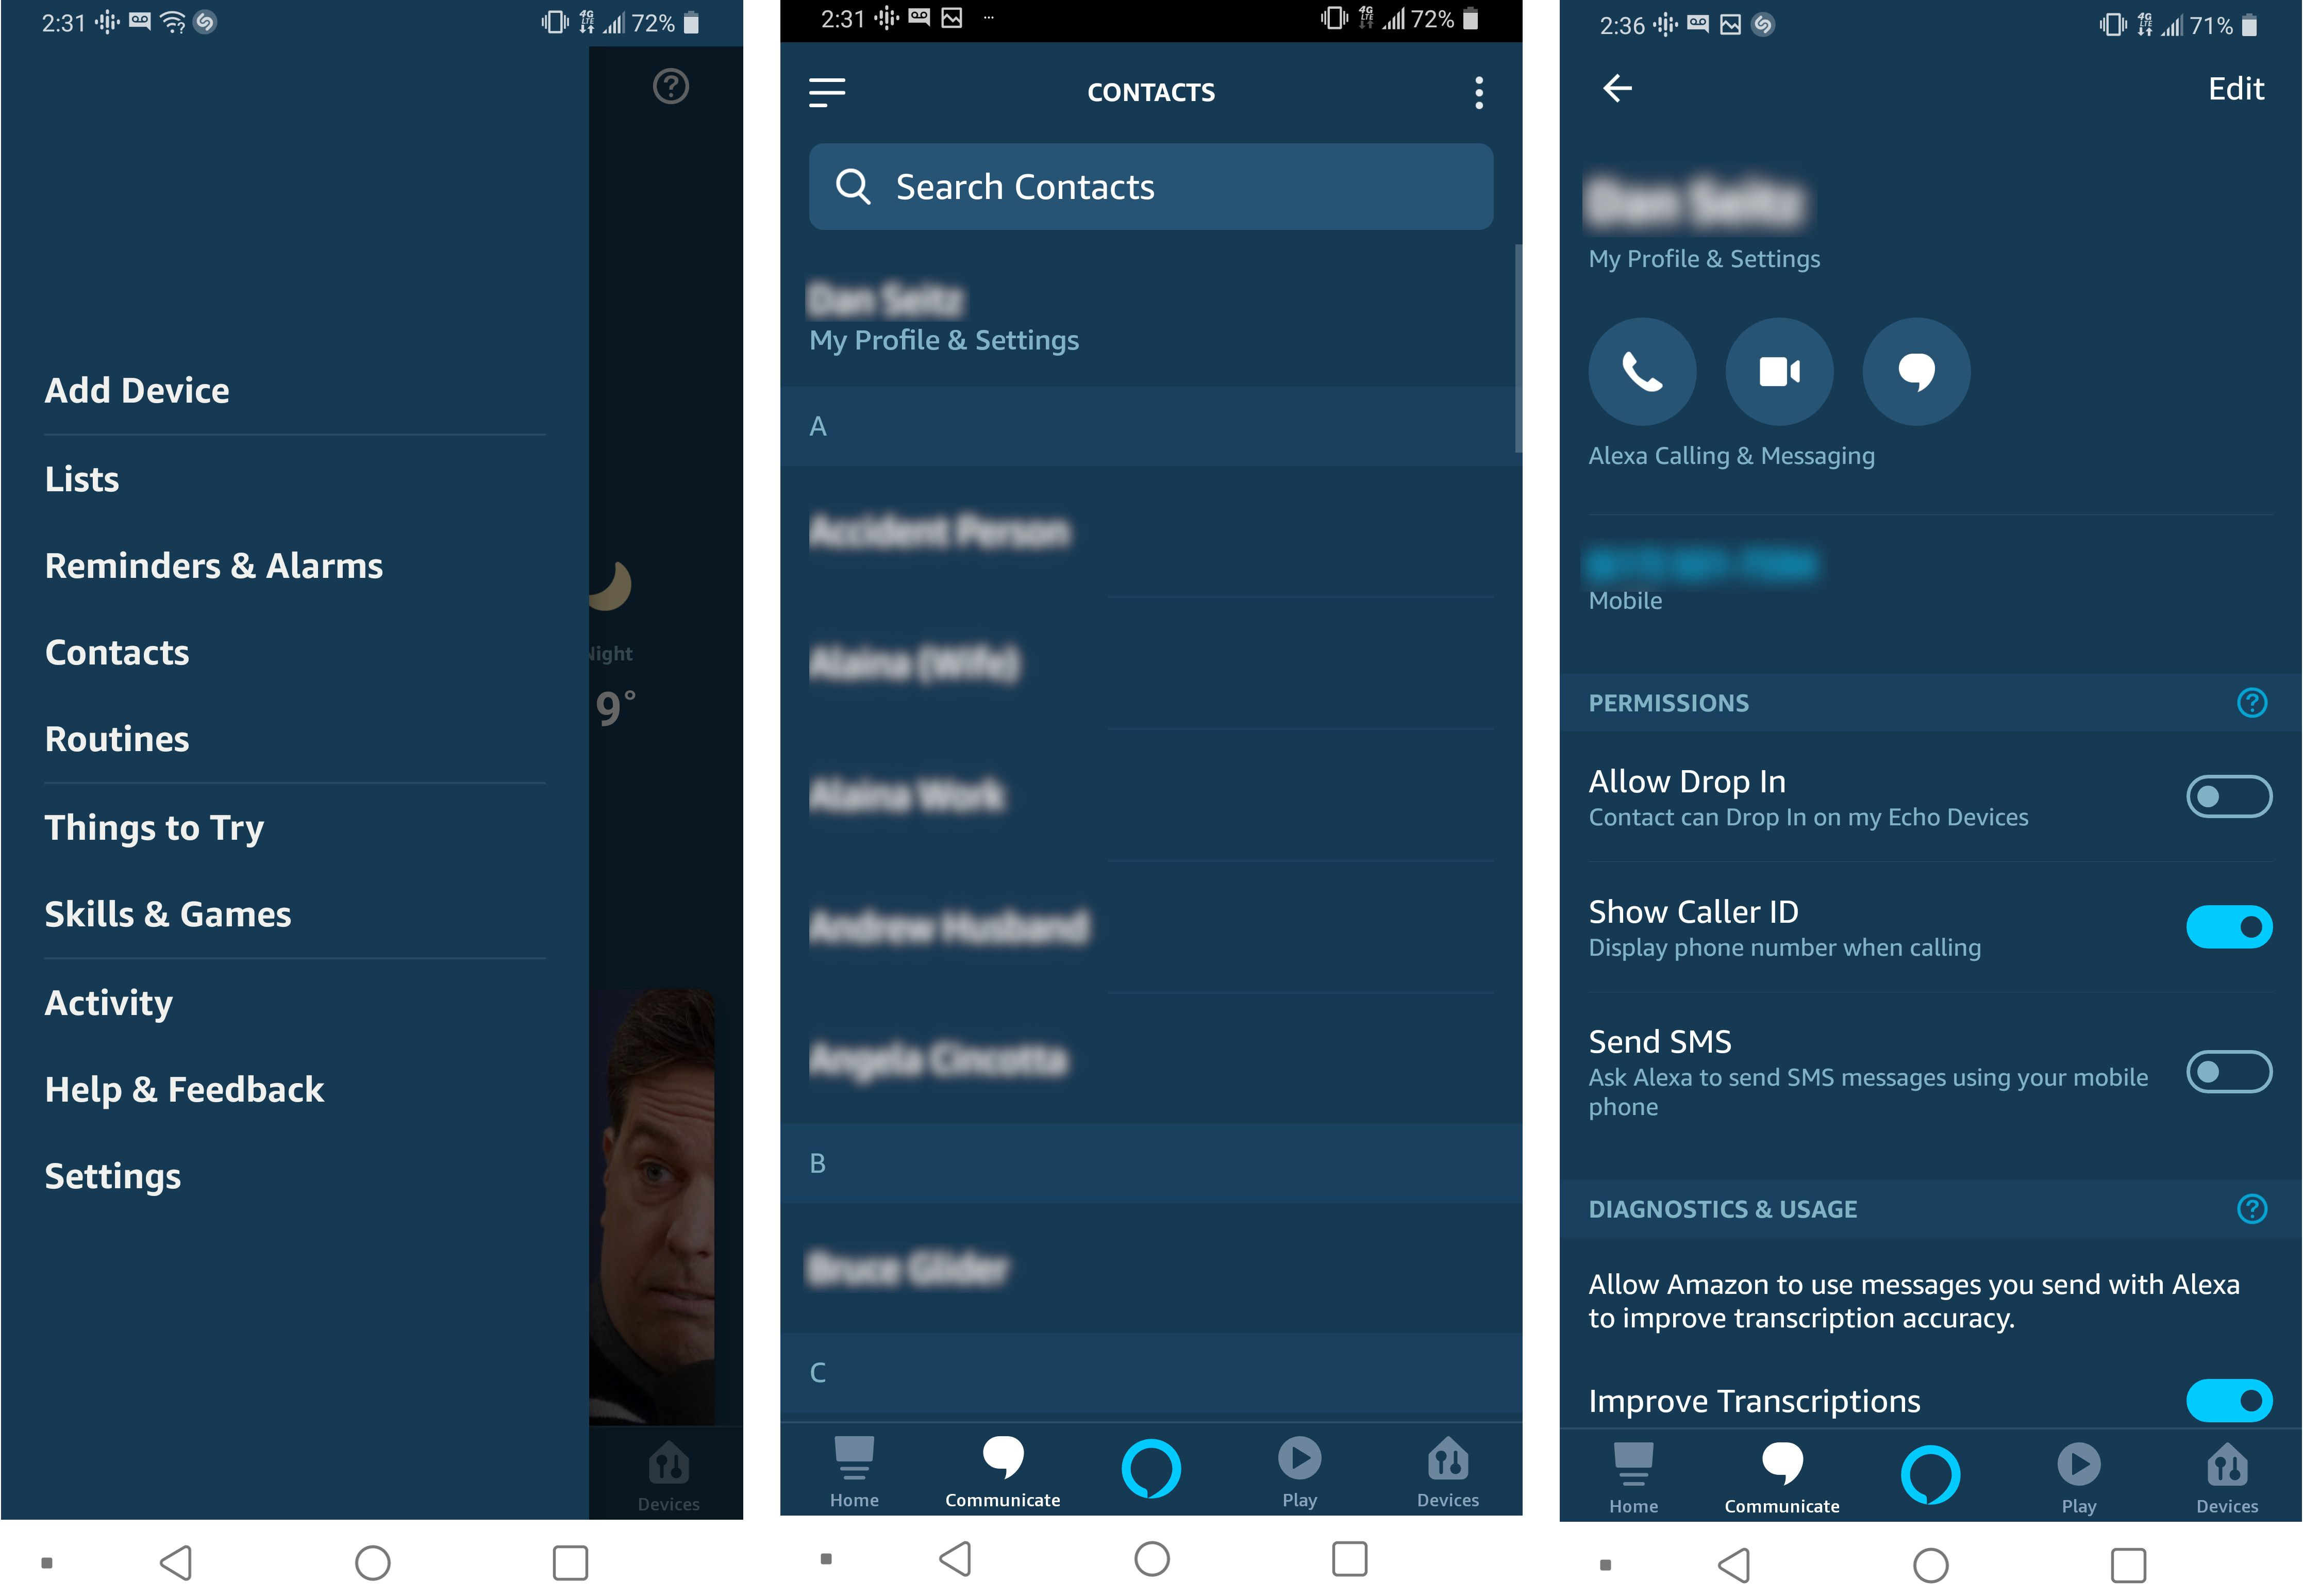 How to Block and Unblock Contacts in Alexa